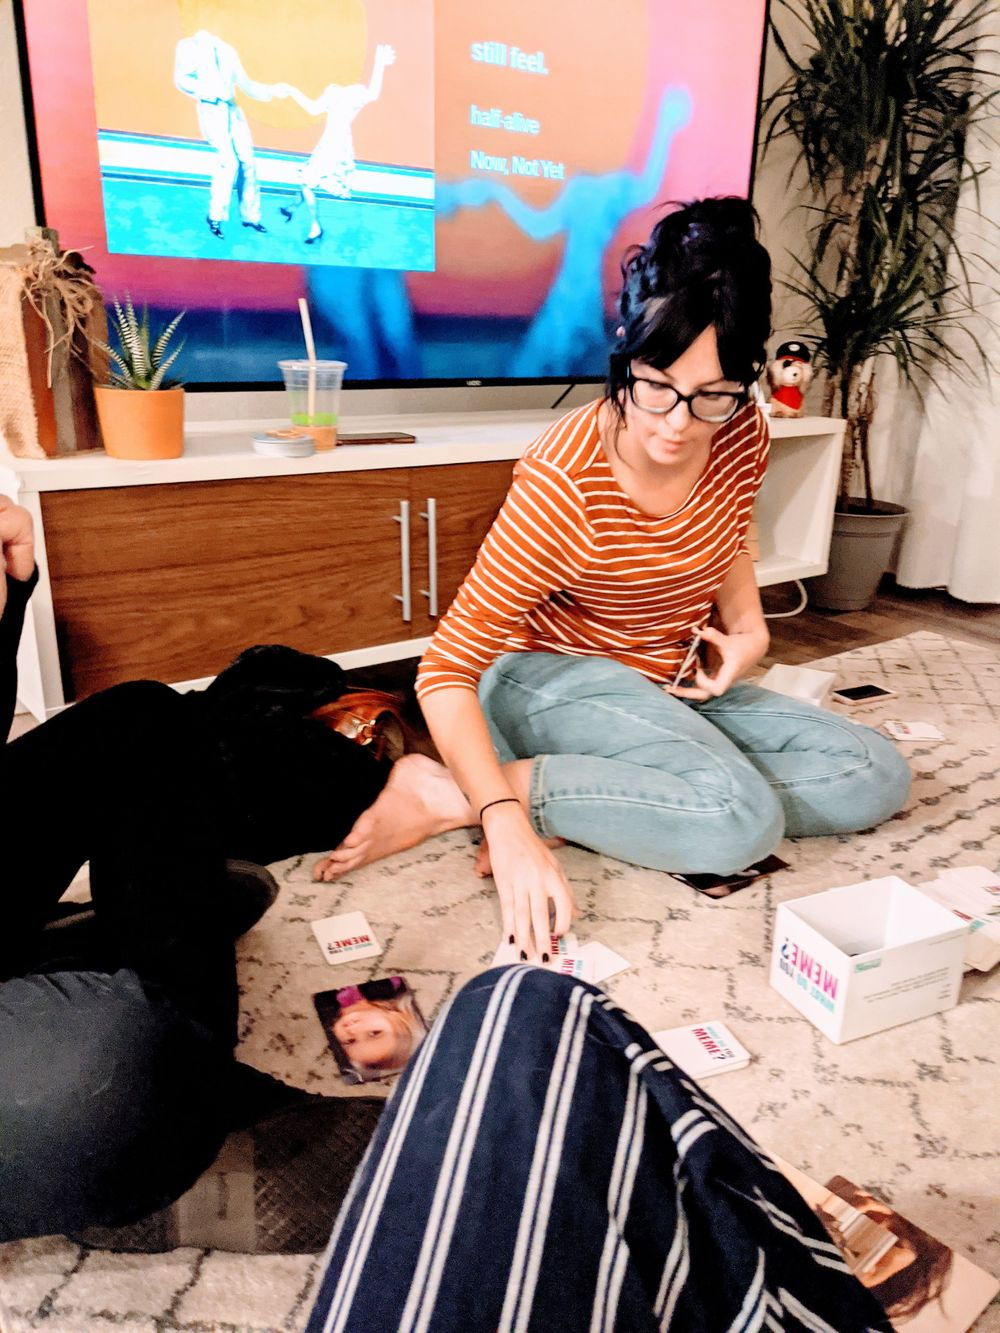 Woman turning over a playing card sitting on a rug in an apartment building